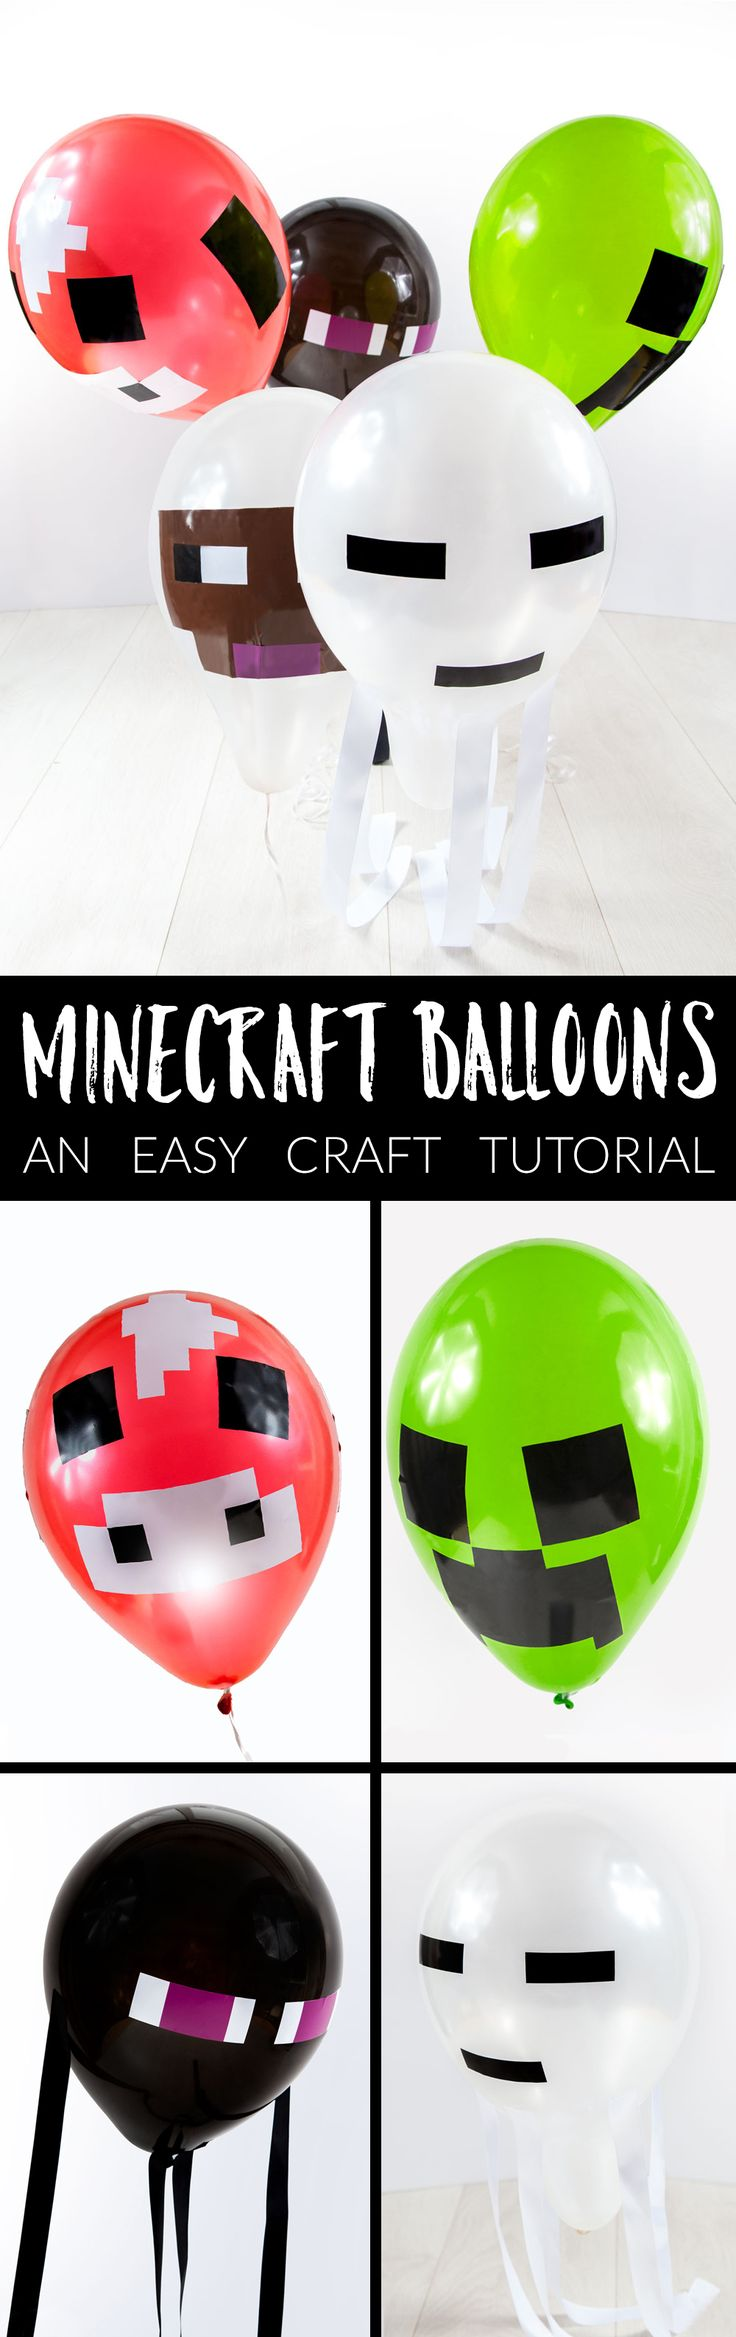 Minecraft Tutorial globo Craft